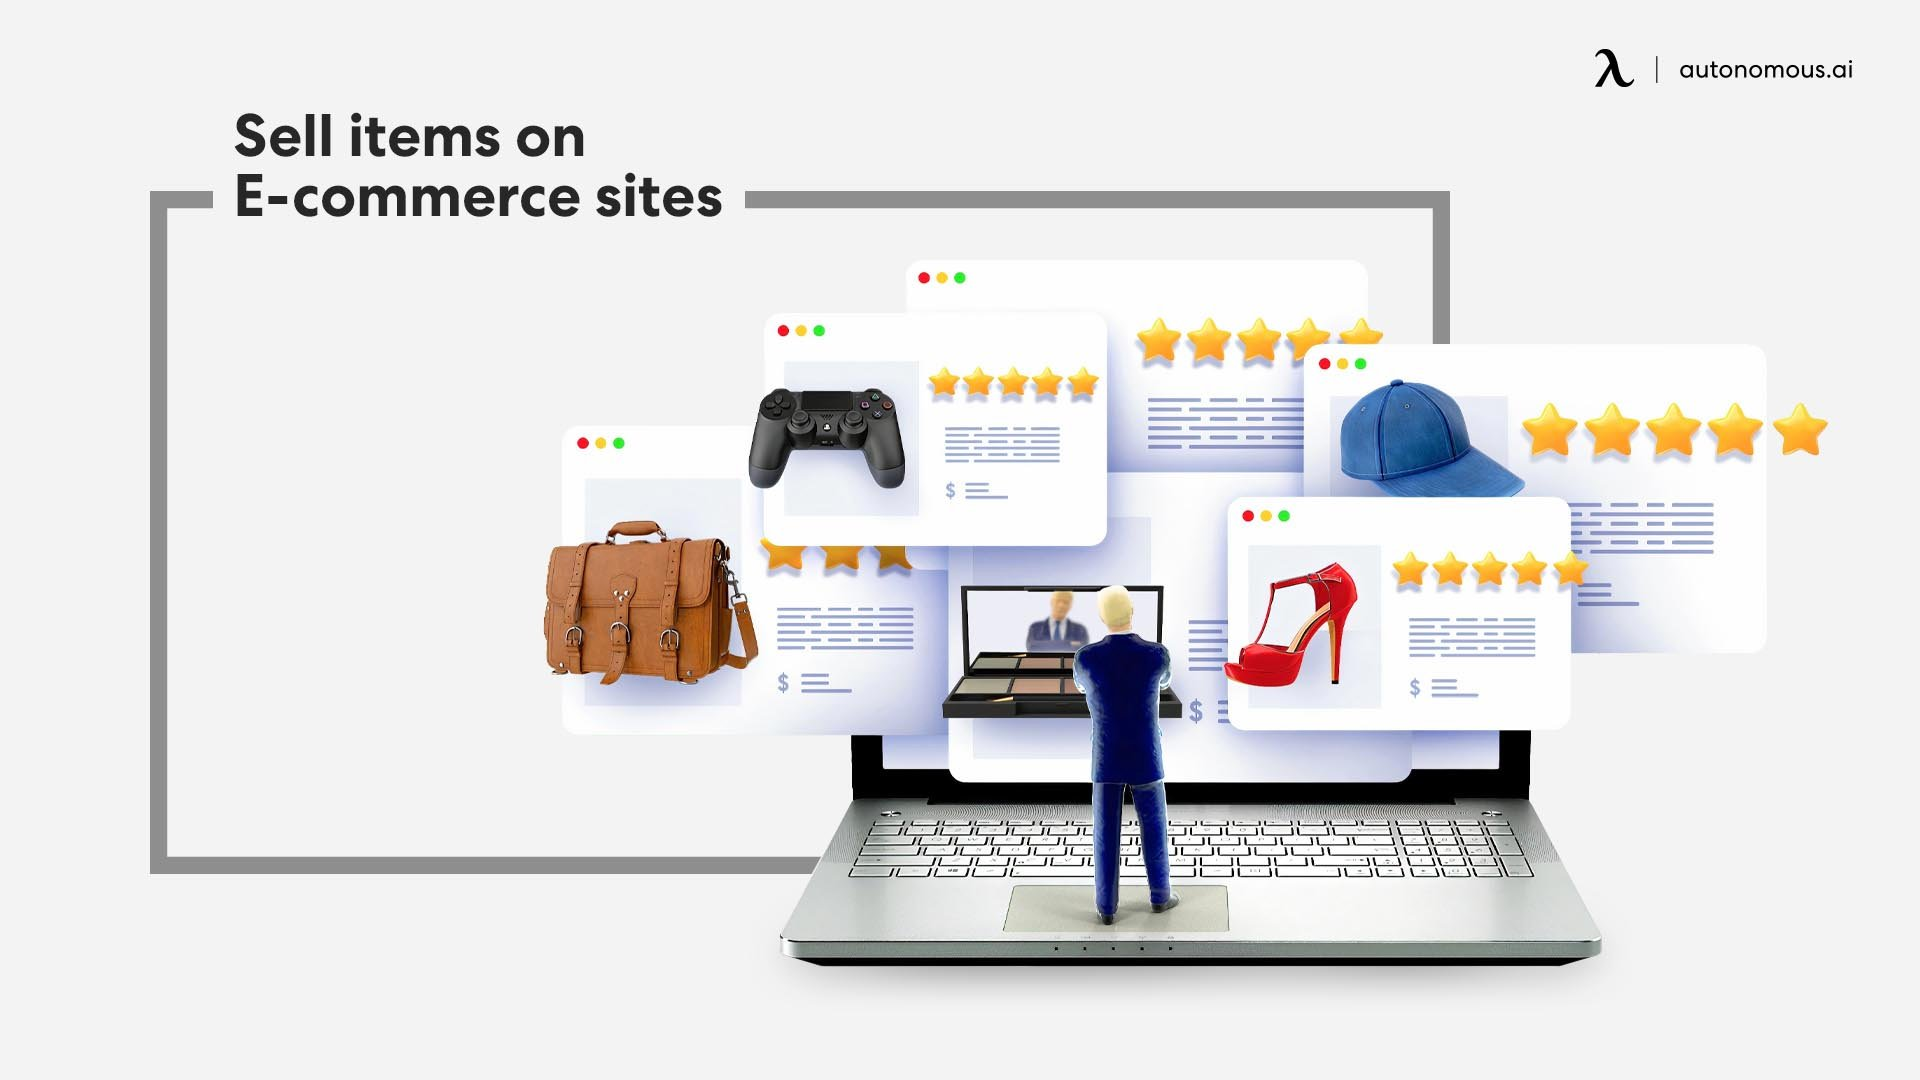 Sell items on E-commerce sites